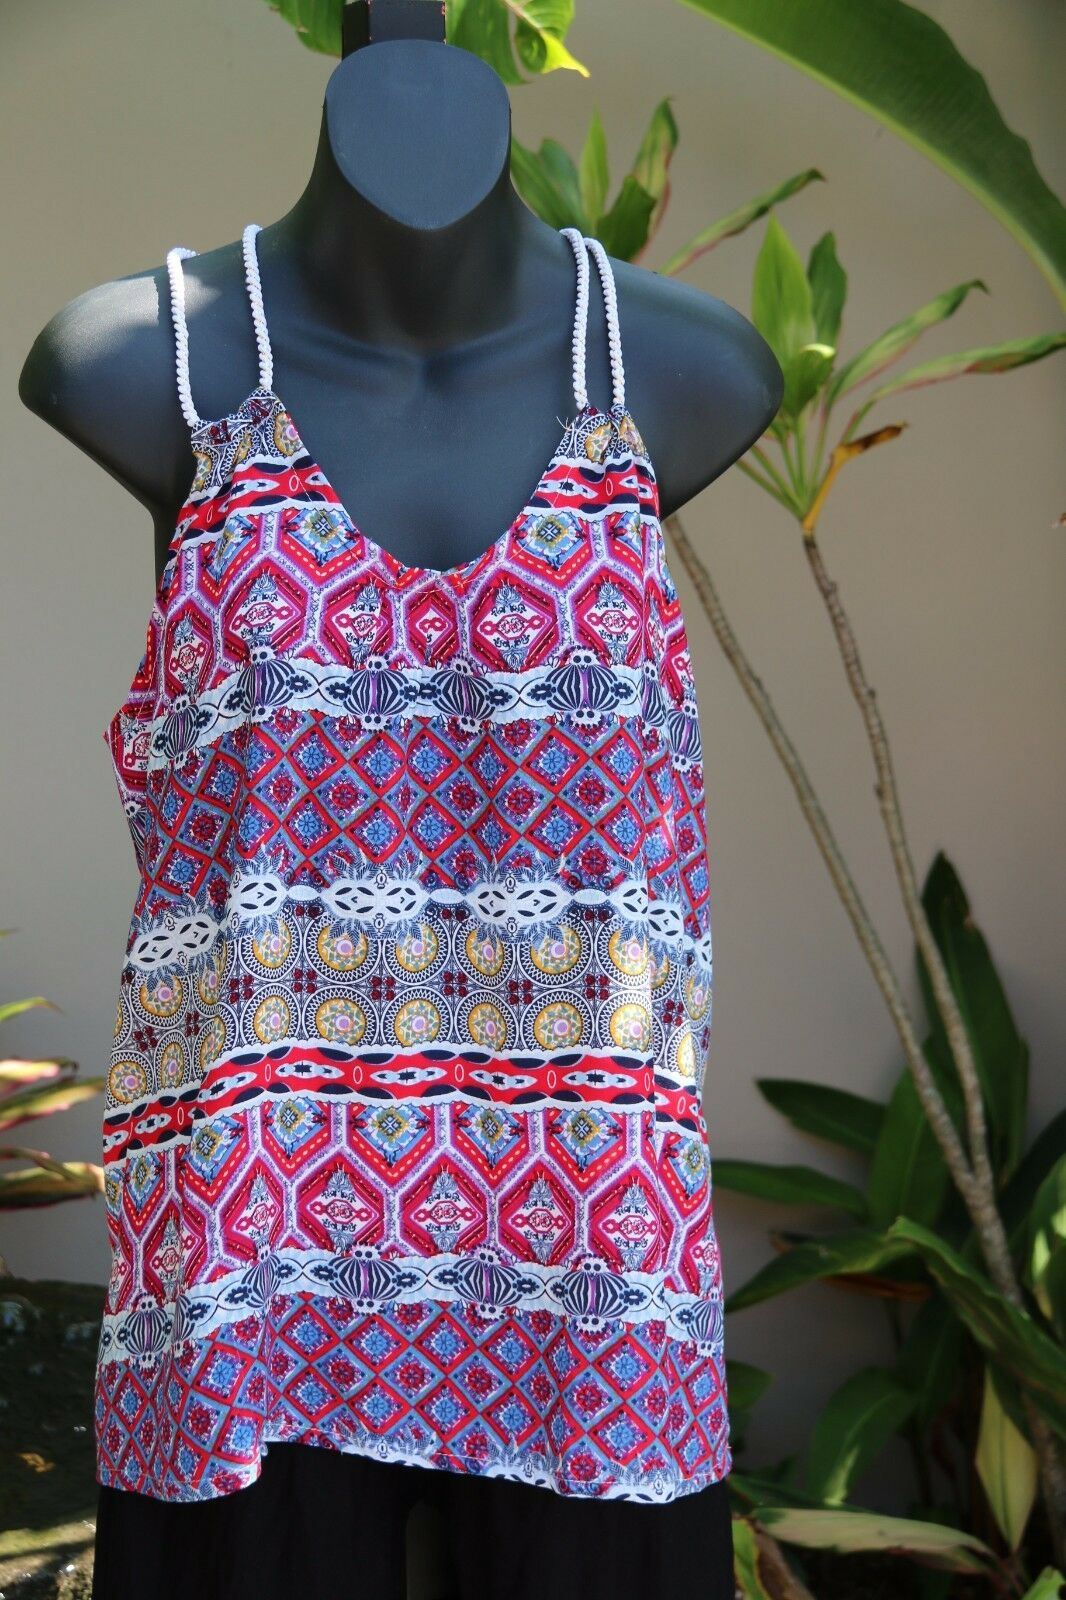 NEW Ladies Cotton Bali Top / One Size / Cool Balinese Summer Casual Top